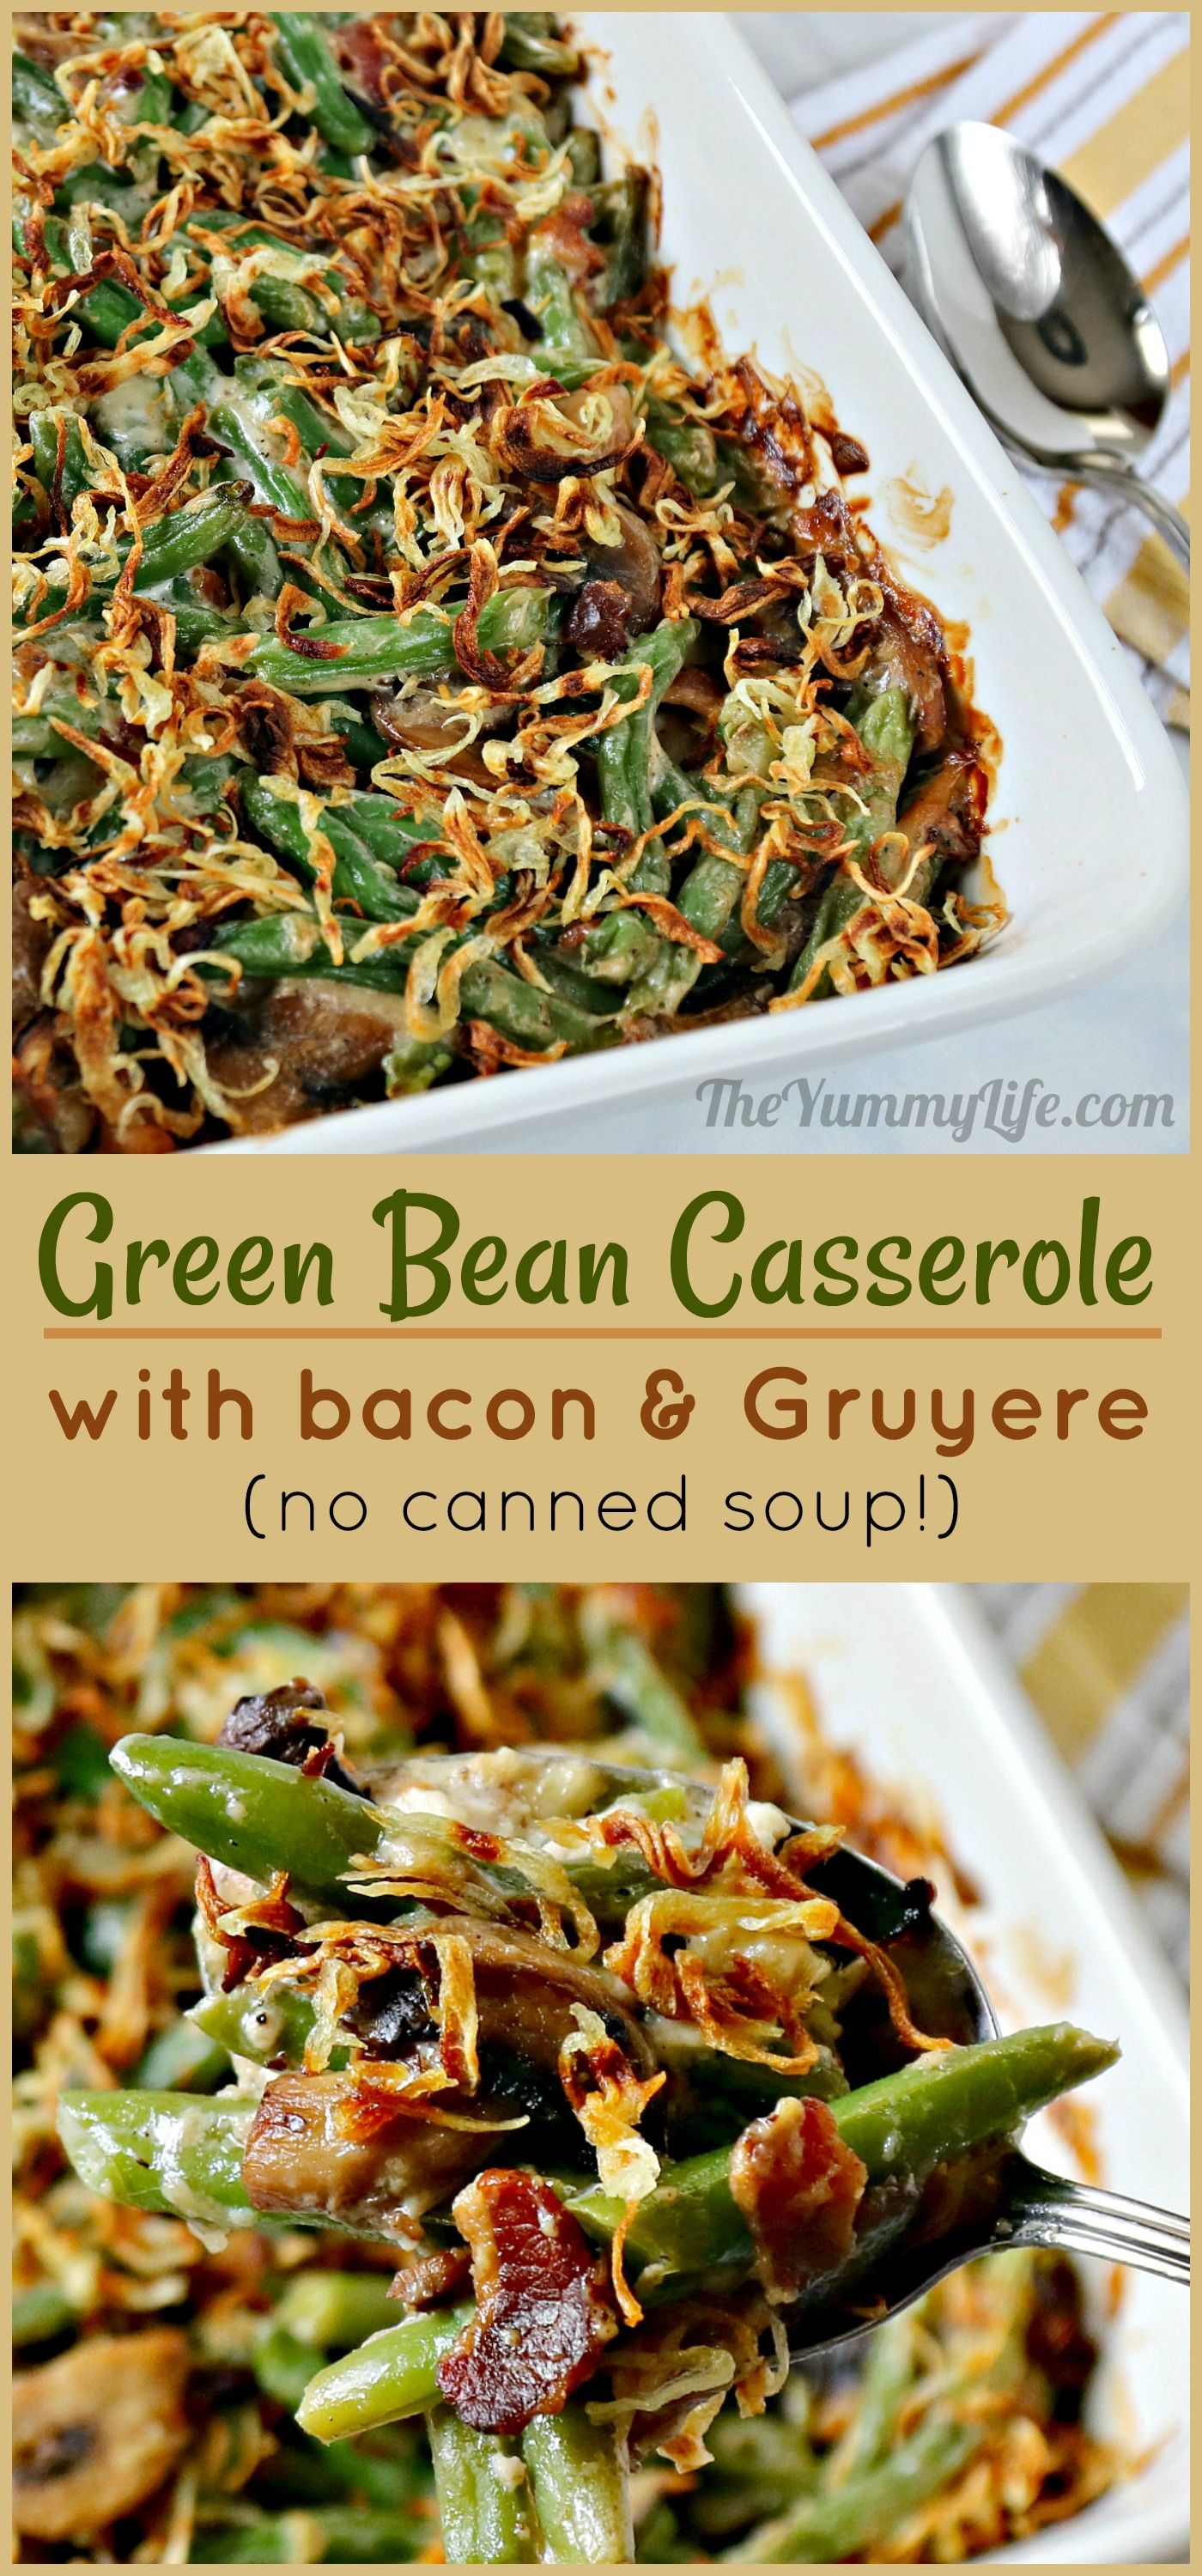 You'll find no cans in this recipe. Everything is made completely from scratch. Green beans combined with bacon, Gruyere, yogurt, and mushrooms topped with crispy onions results in an amazing flavor and the ultimate comfort food casserole. This will disappear fast on your Thanksgiving table. #GreenBeans #Casserole #Bacon #Gruyere #Cheese #Thanksgiving #ComfortFood #MakeAhead #LowCarb